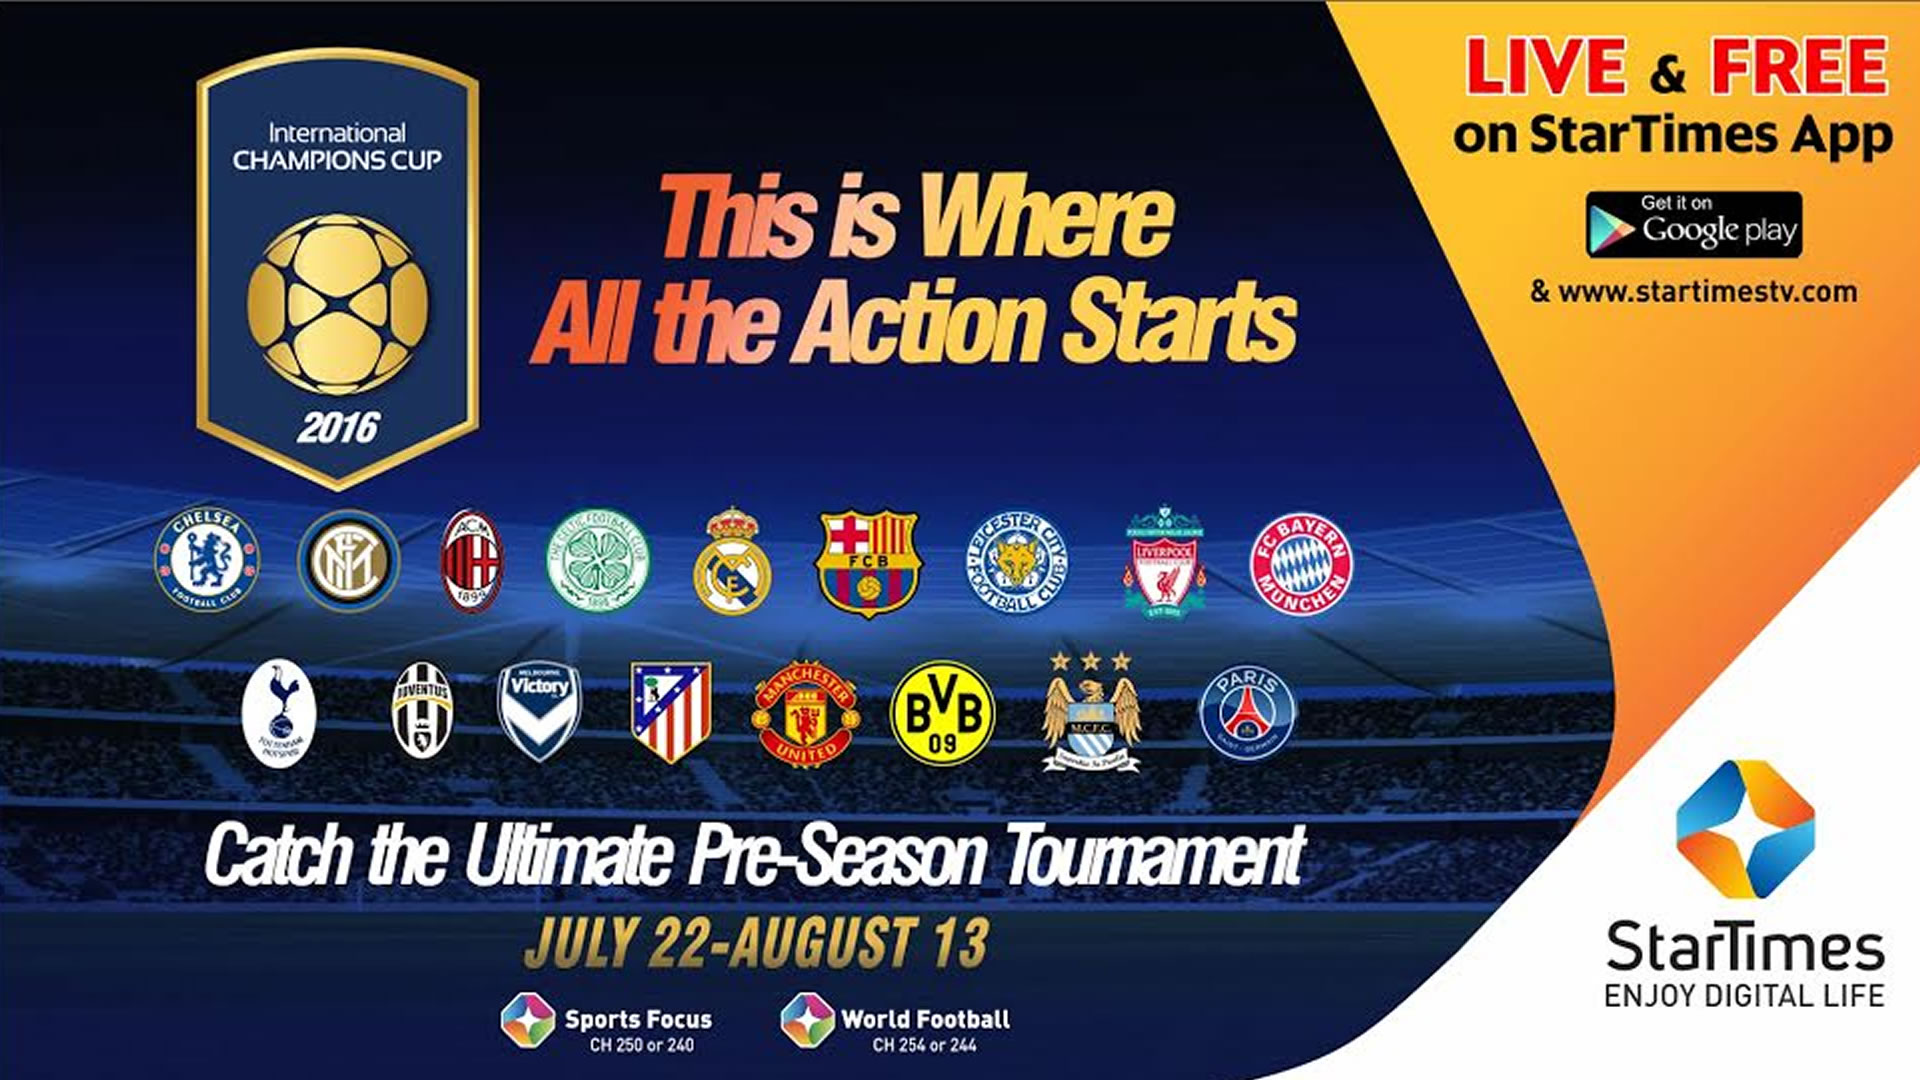 startimes to broadcast international champions cup live and exclusively goal com startimes to broadcast international